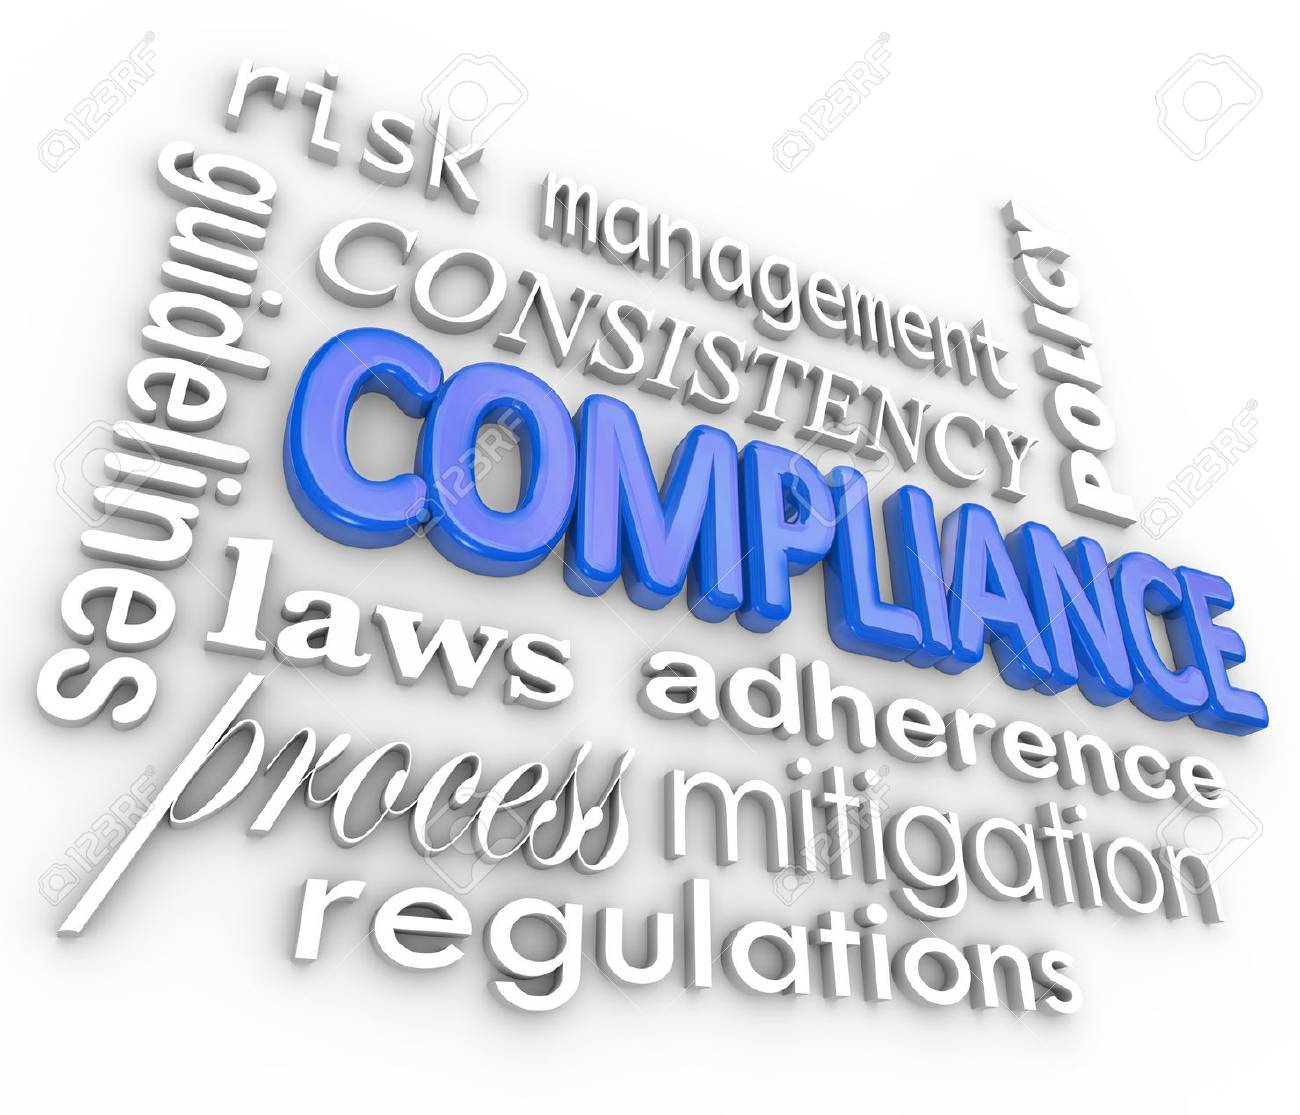 The word Compliance in blue 3d letters surrounded by related terms such as risk management, mitigation, guidelines, law, process, regulation, consistency, adherence and policy Stock Photo - 22869501